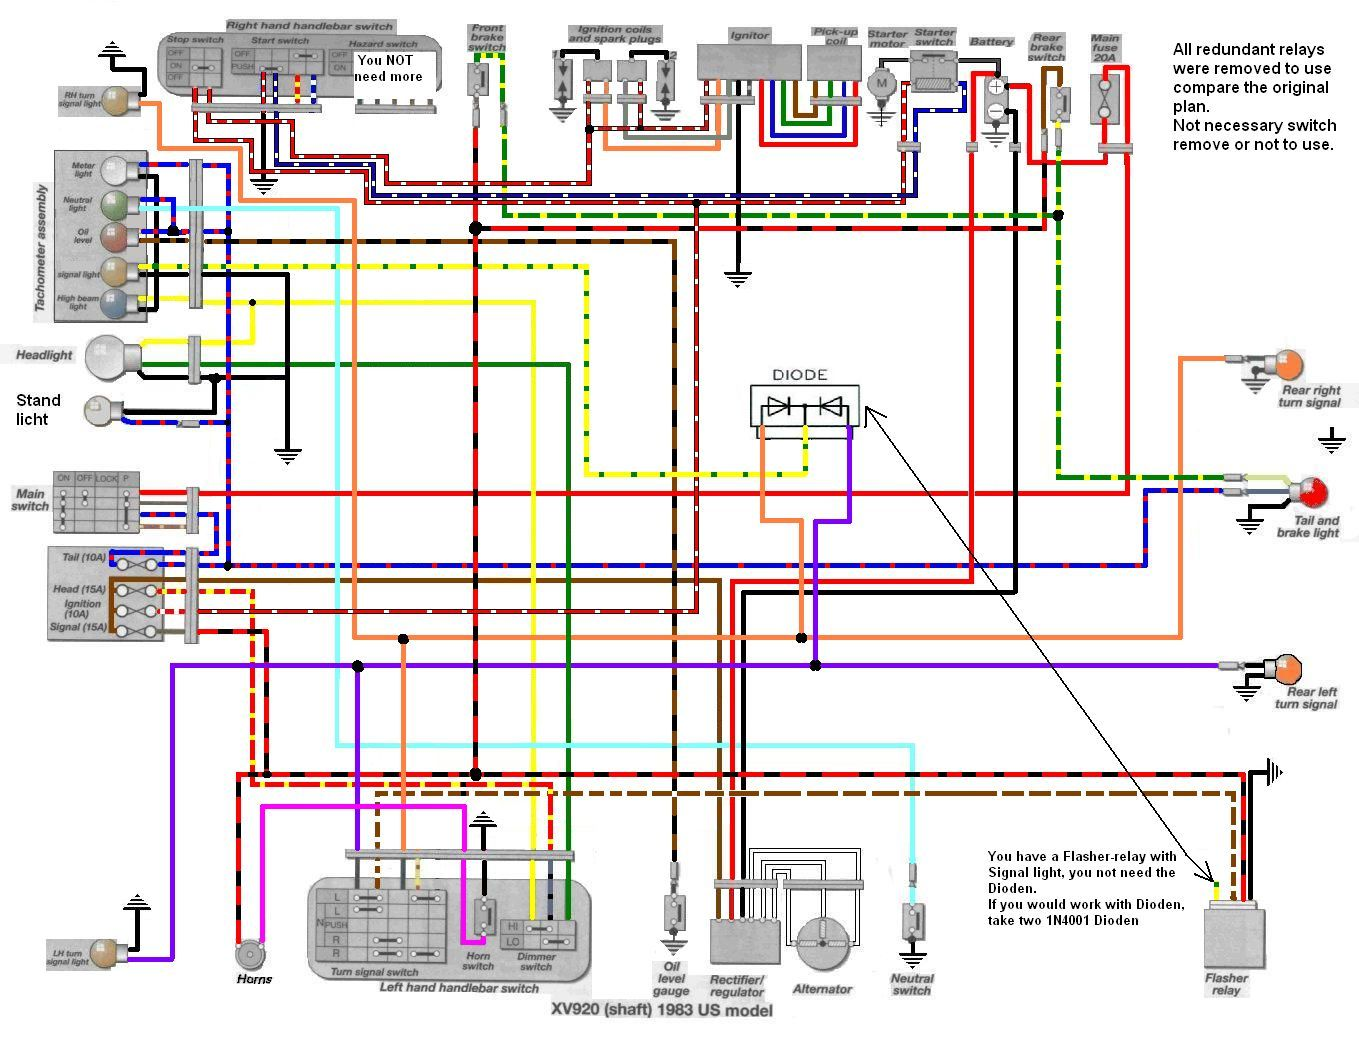 de5d52e2409fec2f5ef10f130e06771b tr1 xv1000 xv920 wiring diagrams manfred's tr1 page all about yamaha virago 250 wiring diagram at cita.asia